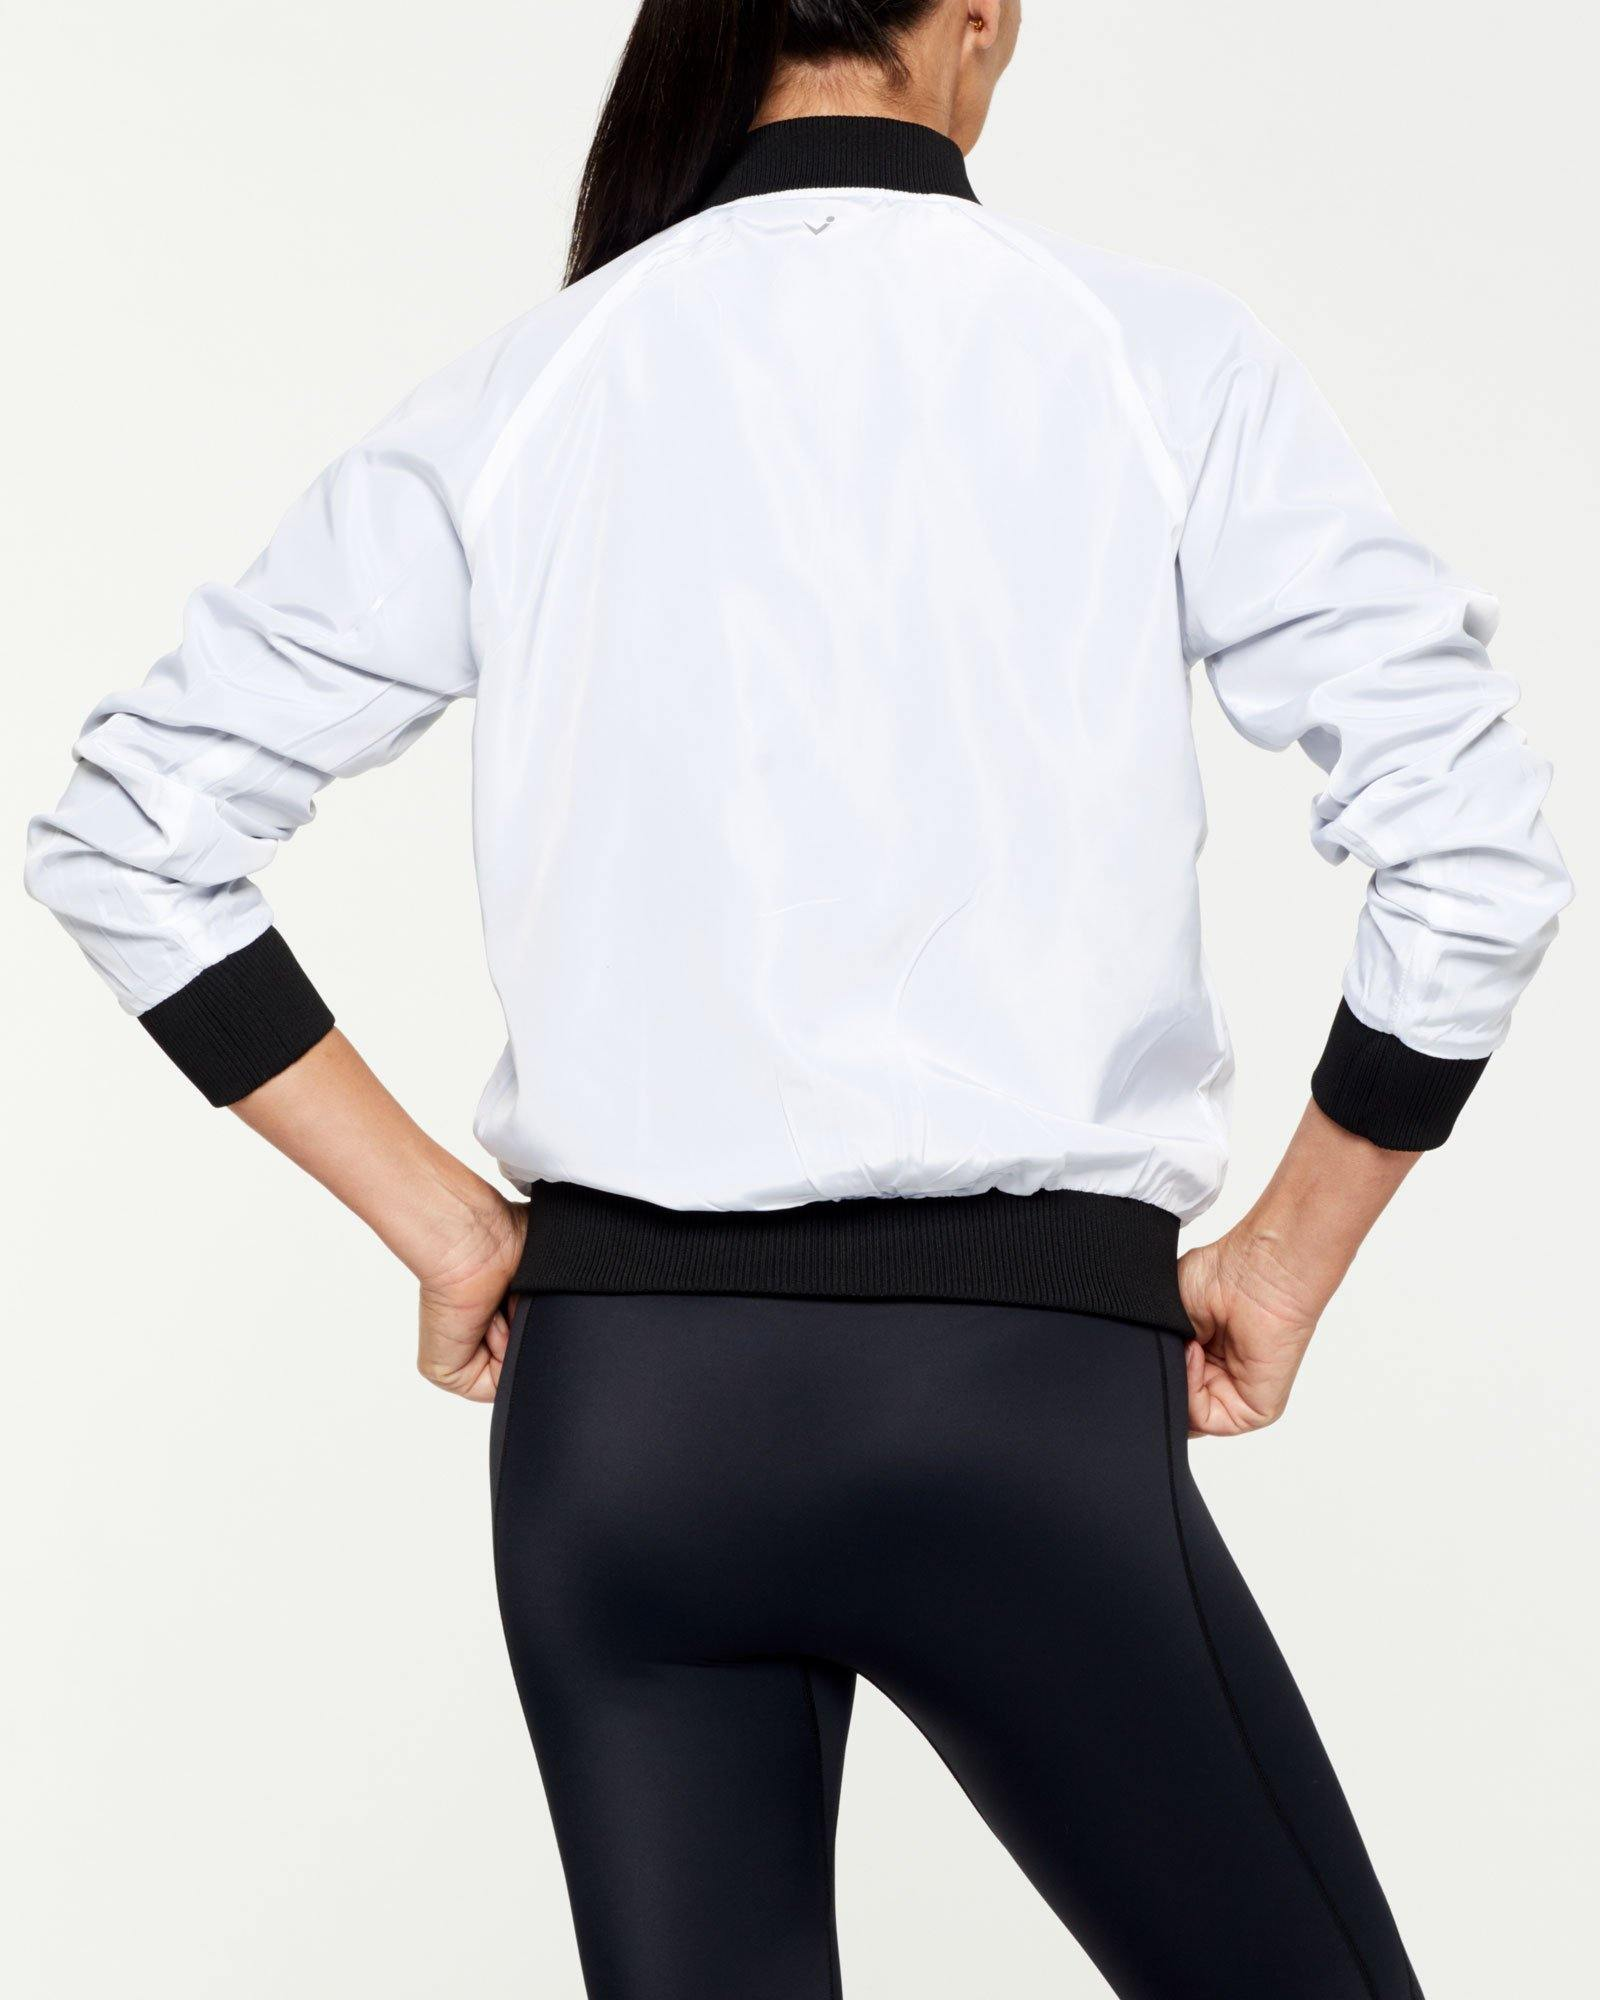 COMPANION PIKE REVERSIBLE JACKET, BLACK OUTER,  WHITE INNER, WORN WITH GRACILIS 7/8 LEGGING AND INFRASPINATUS ACTIVE TOP, WHITE BACK VIEW